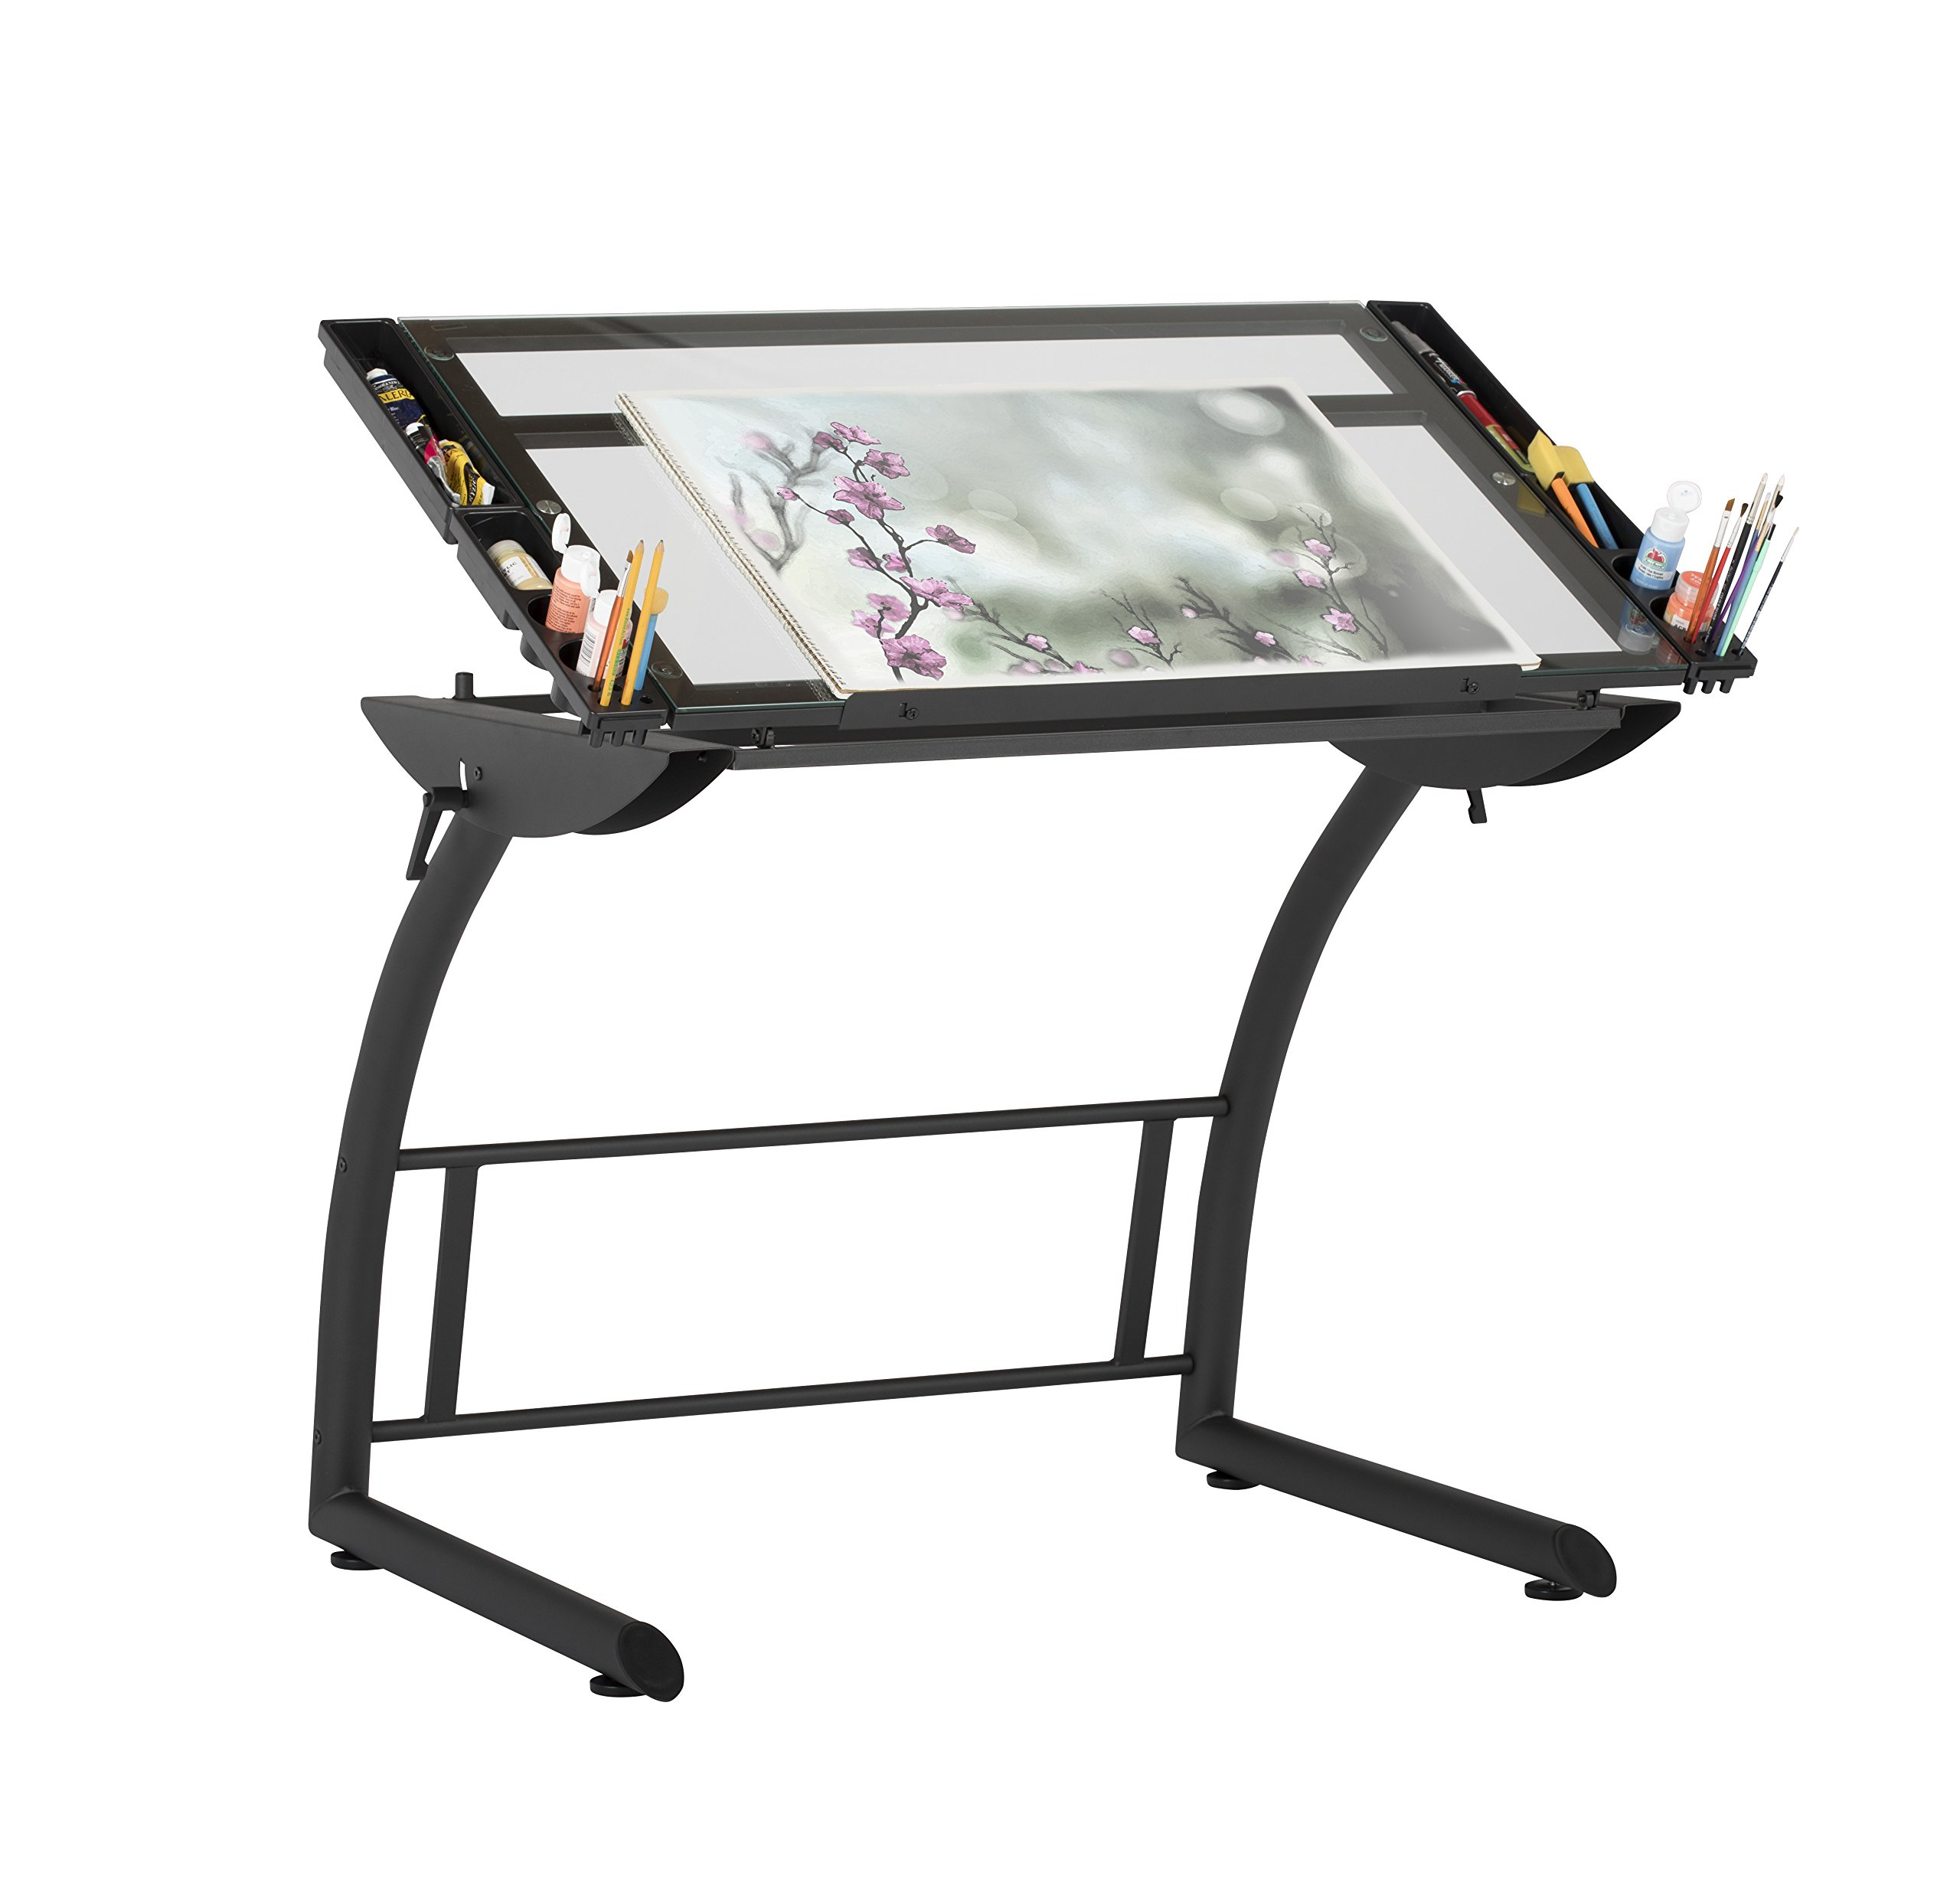 Studio Designs 10088 Triflex Drawing, Sit / Stand Up ADJ Desk, Charcoal/Clear Glass by Studio Designs